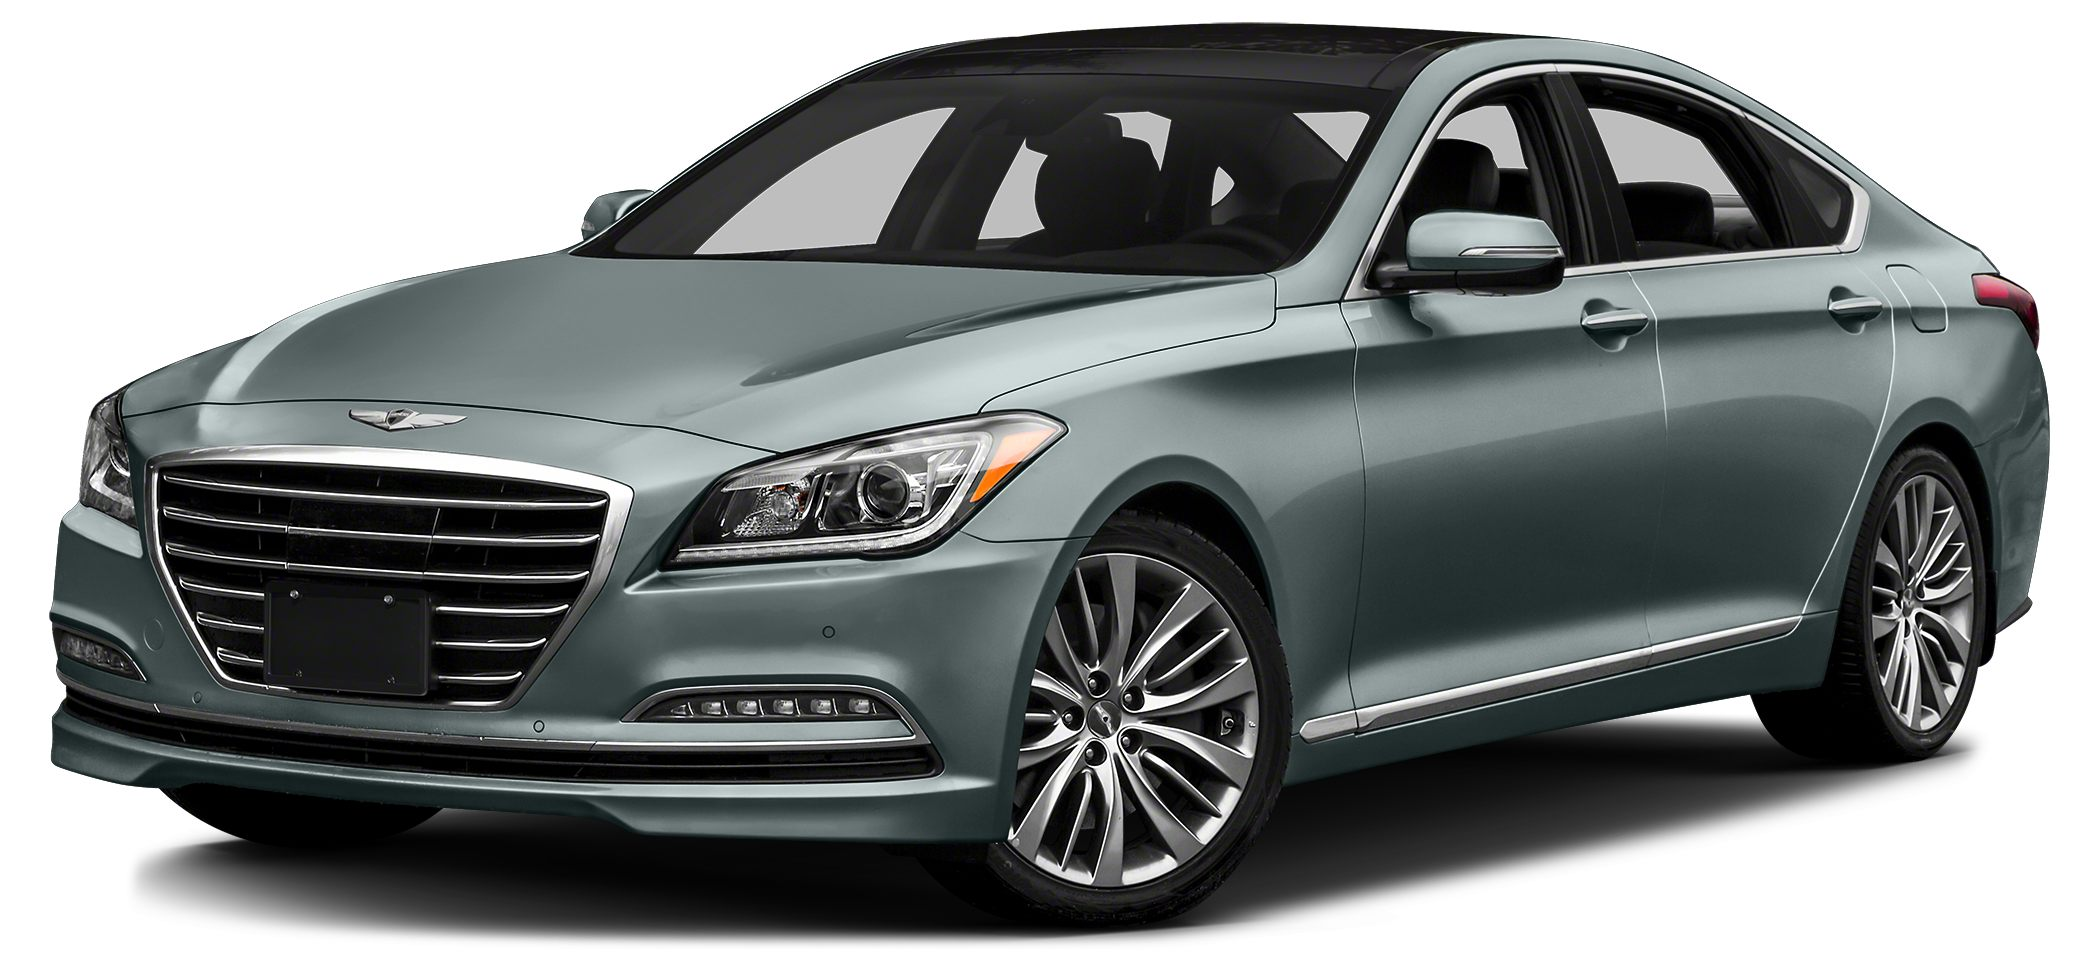 2015 Hyundai Genesis 38 Experience the innovative safety technology striking design and inspired